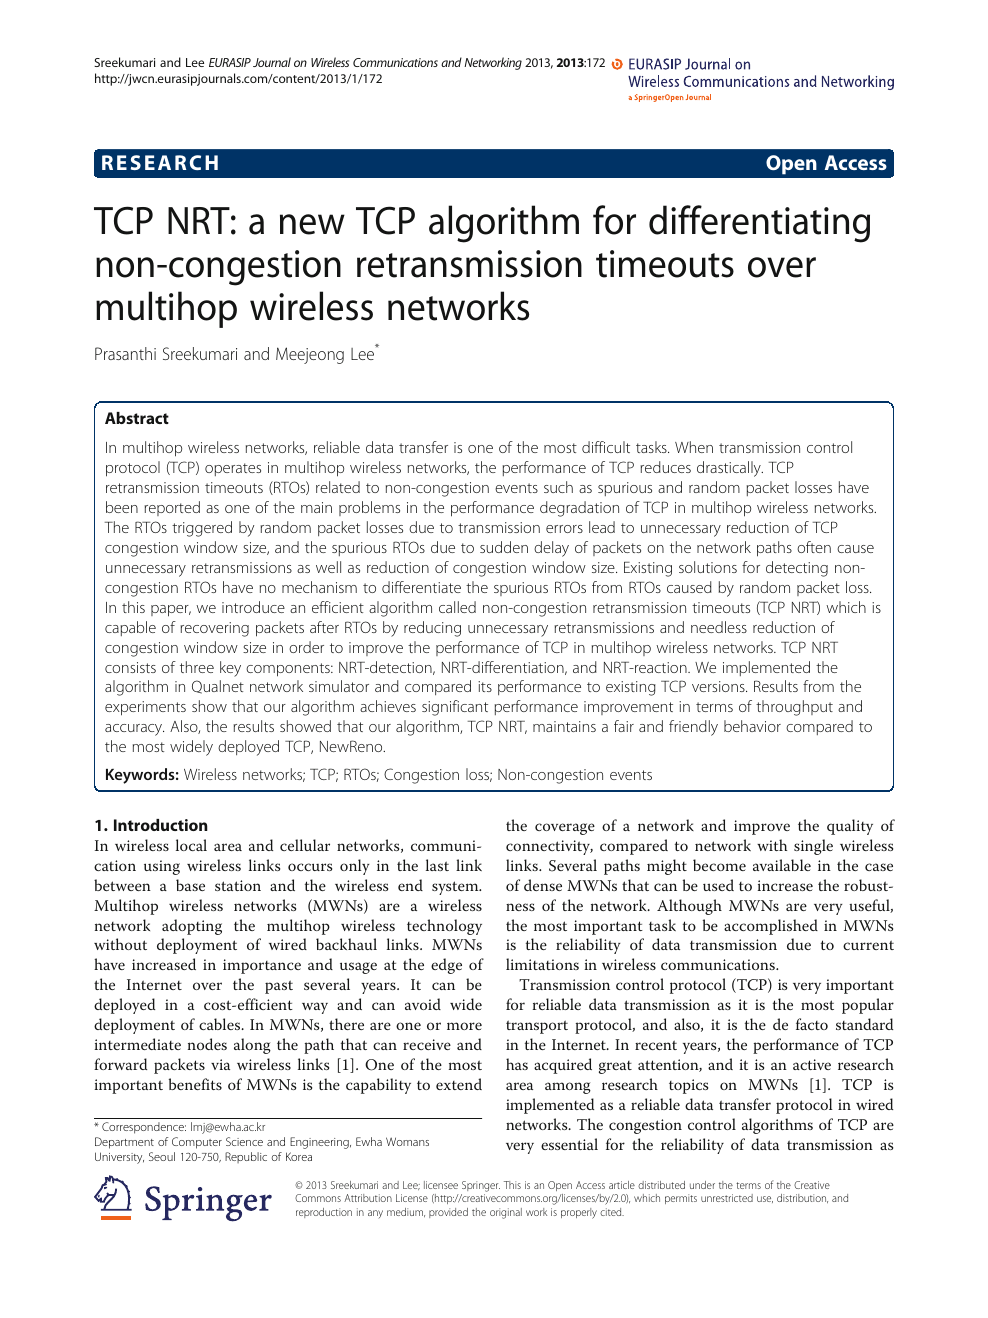 TCP NRT: a new TCP algorithm for differentiating non